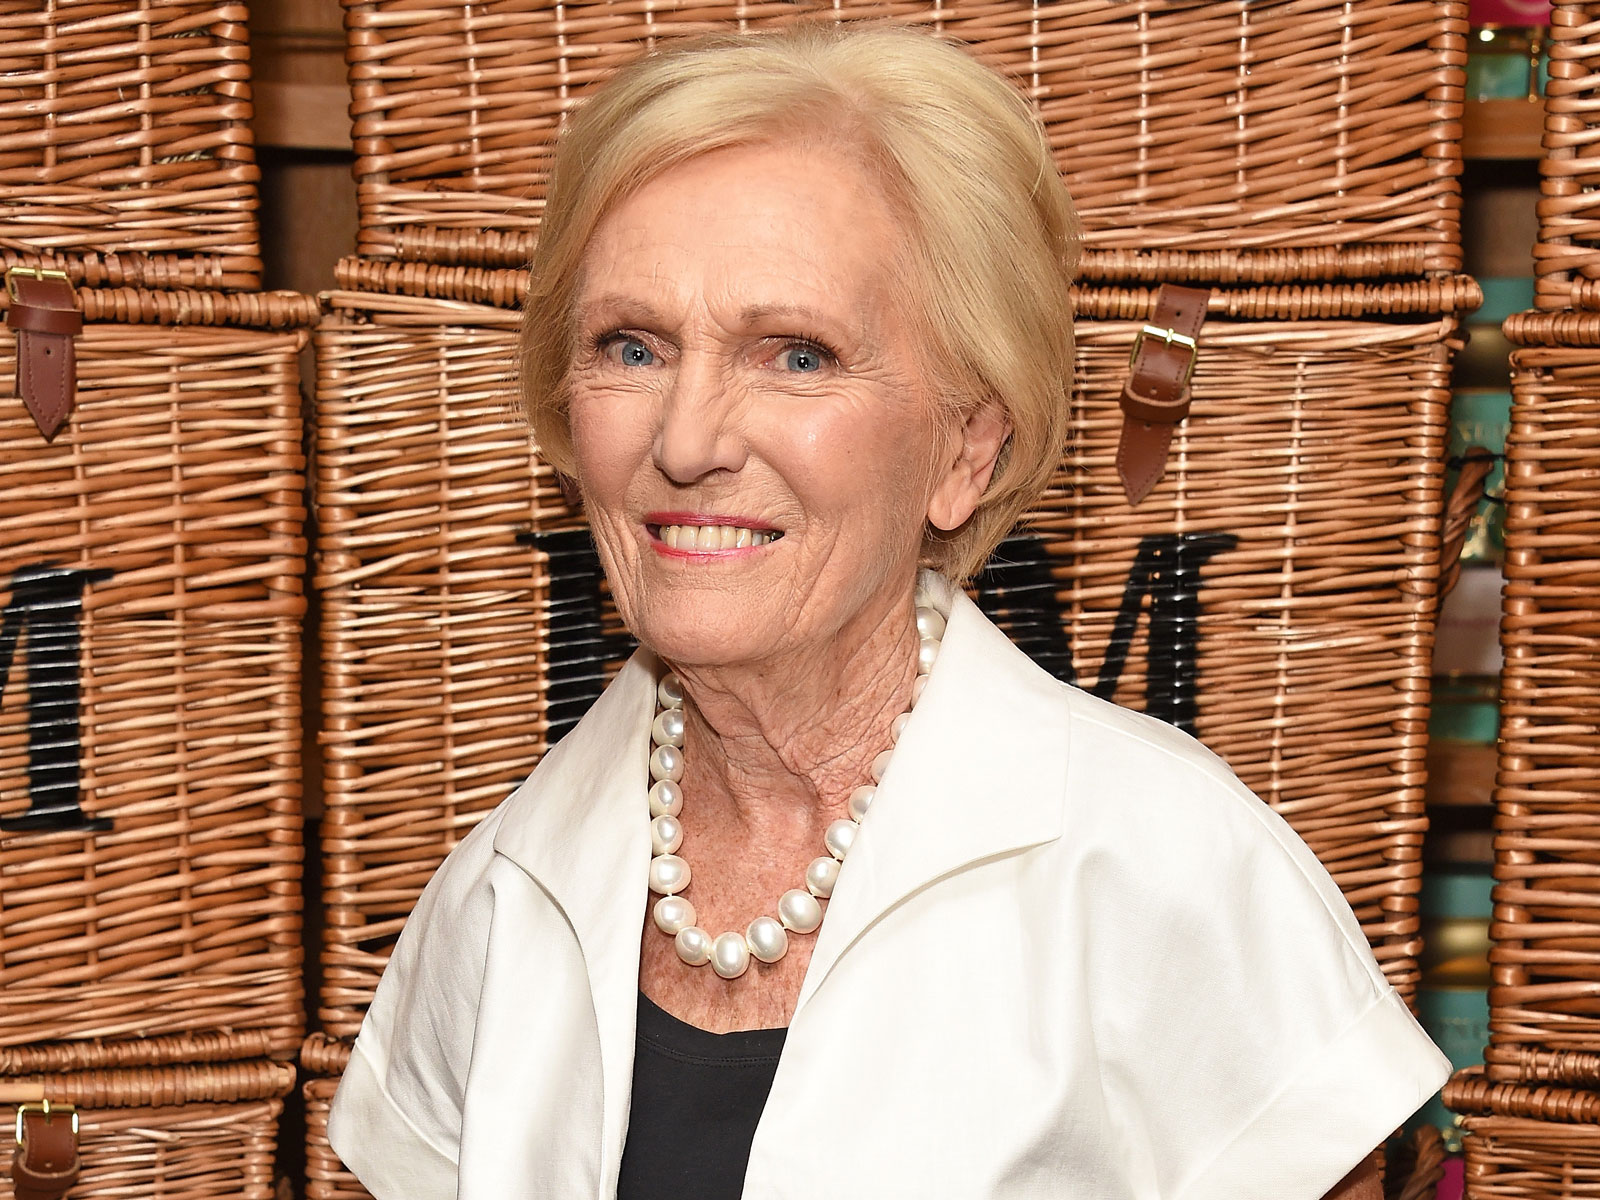 mary-berry-pie-FT-BLOG0518.jpg